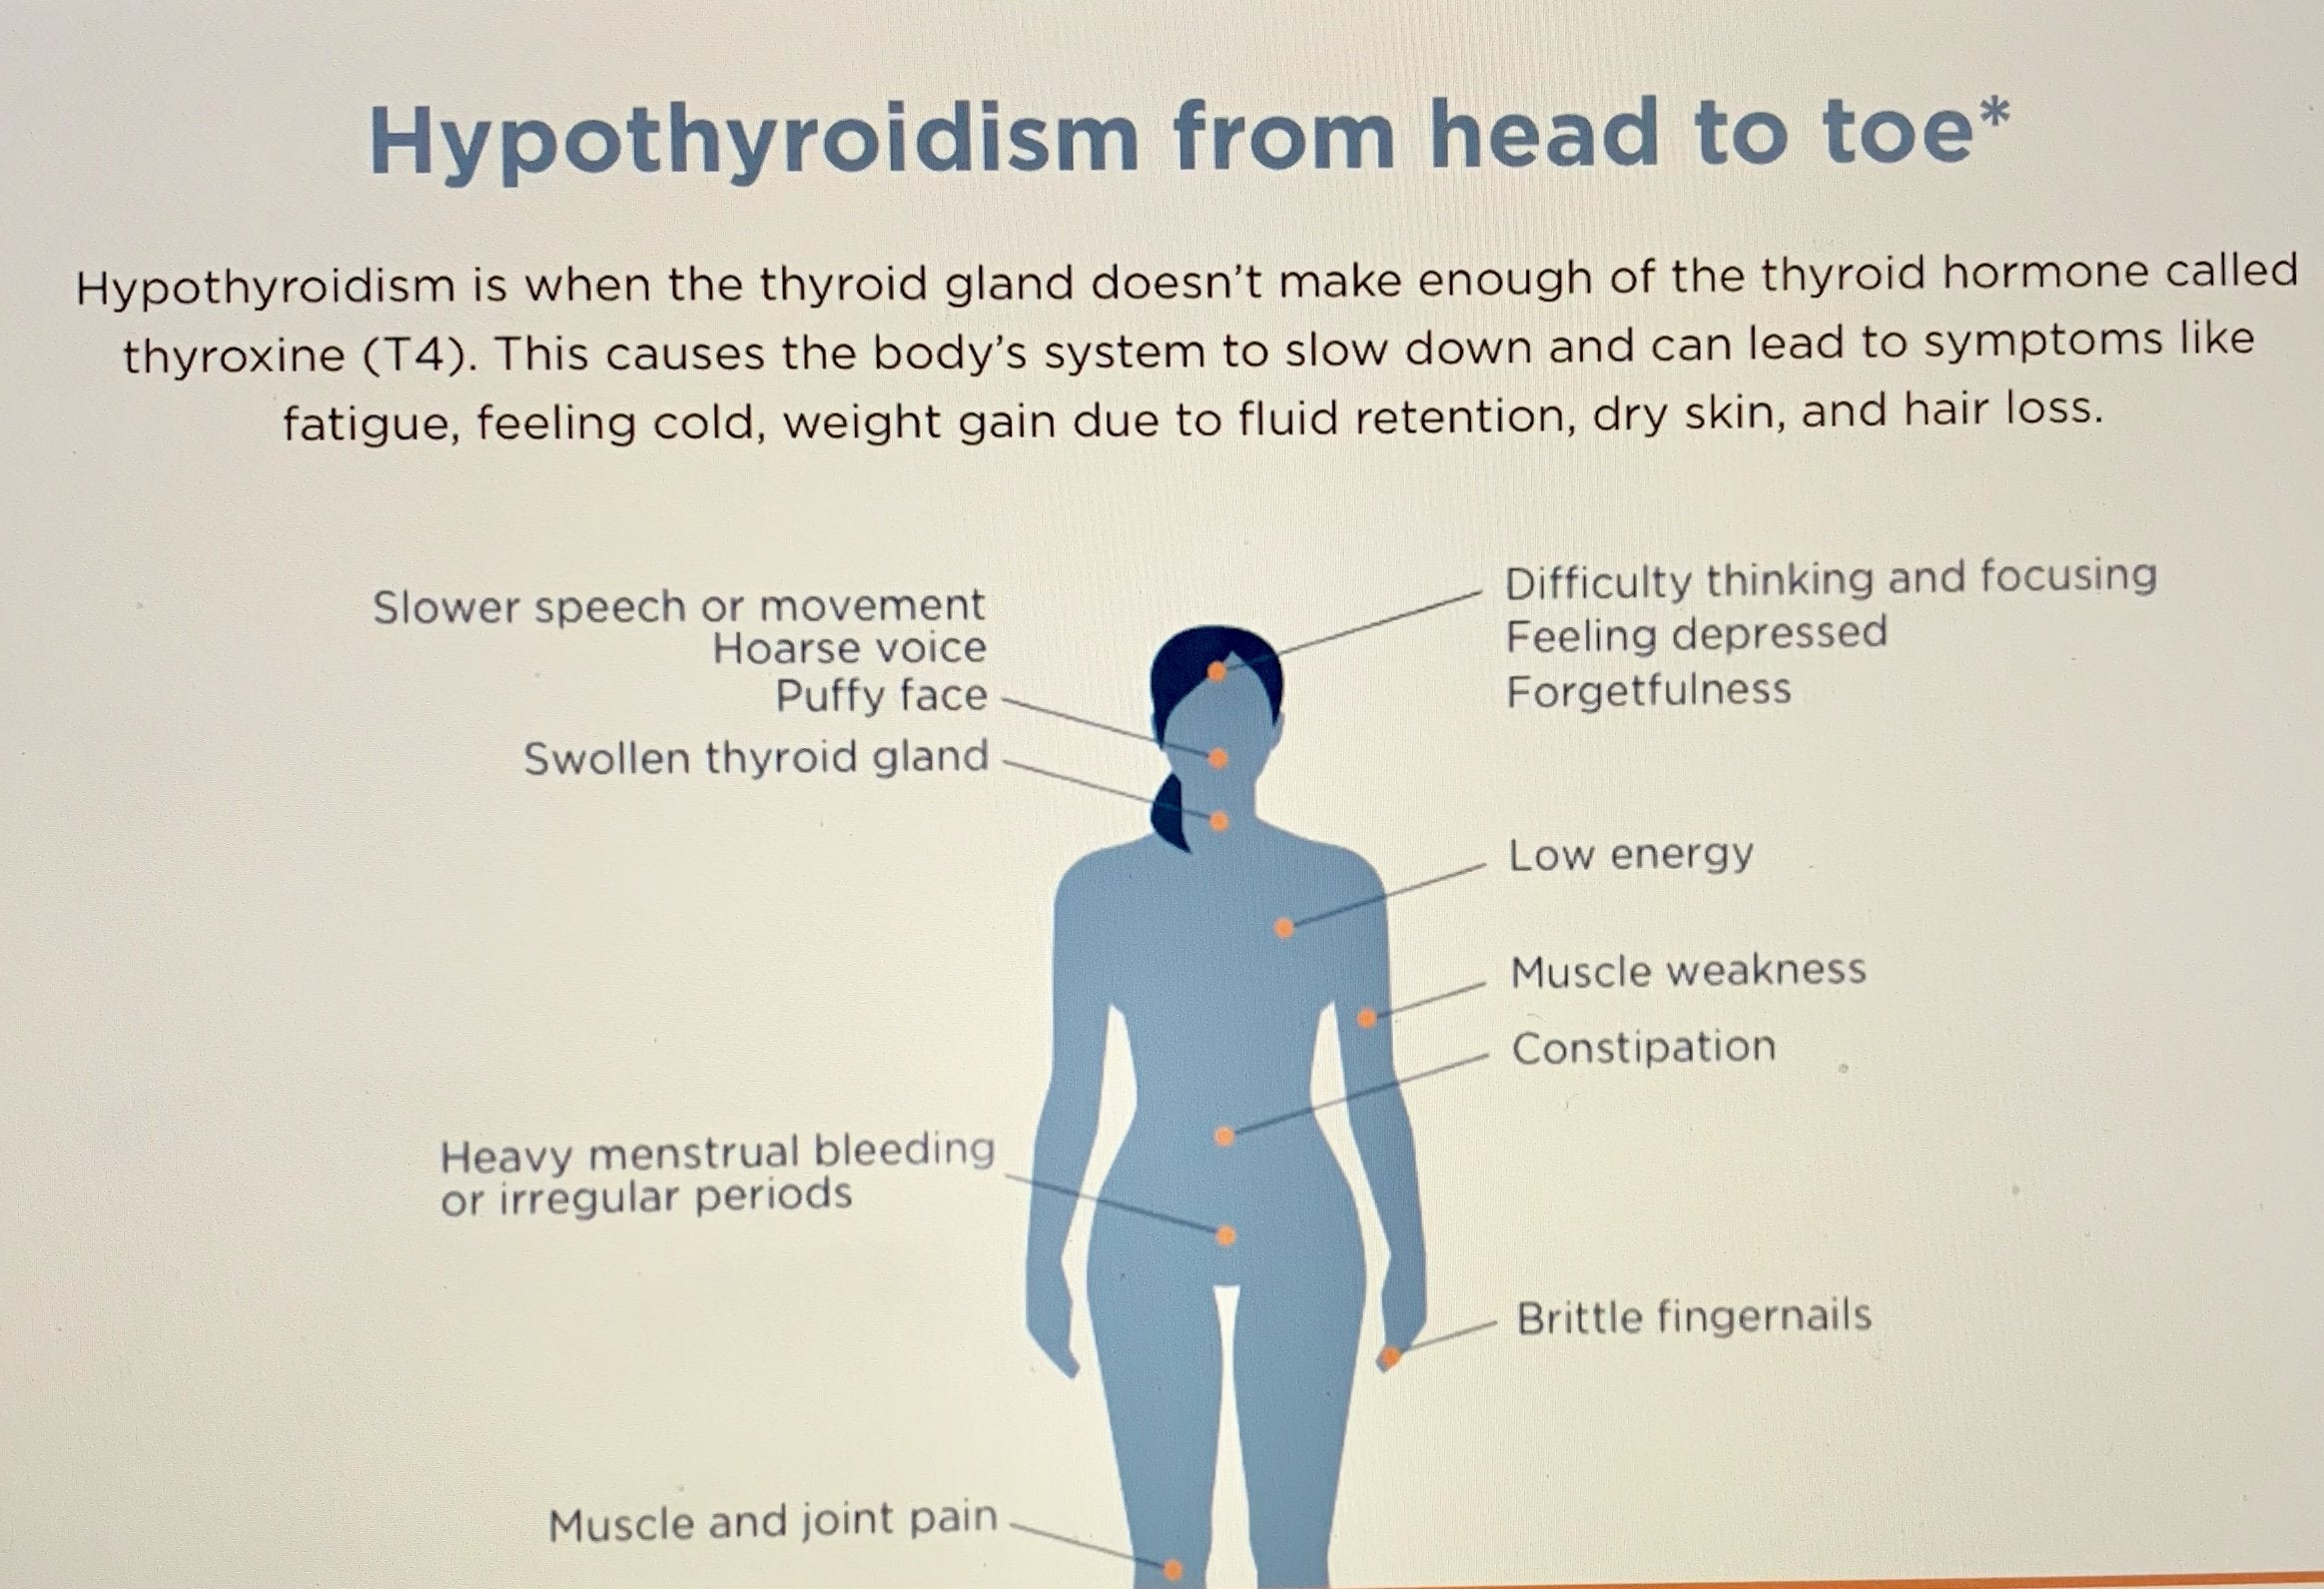 Iodine Patch Test for Hypothyroidism. Christiane Northrup, MD